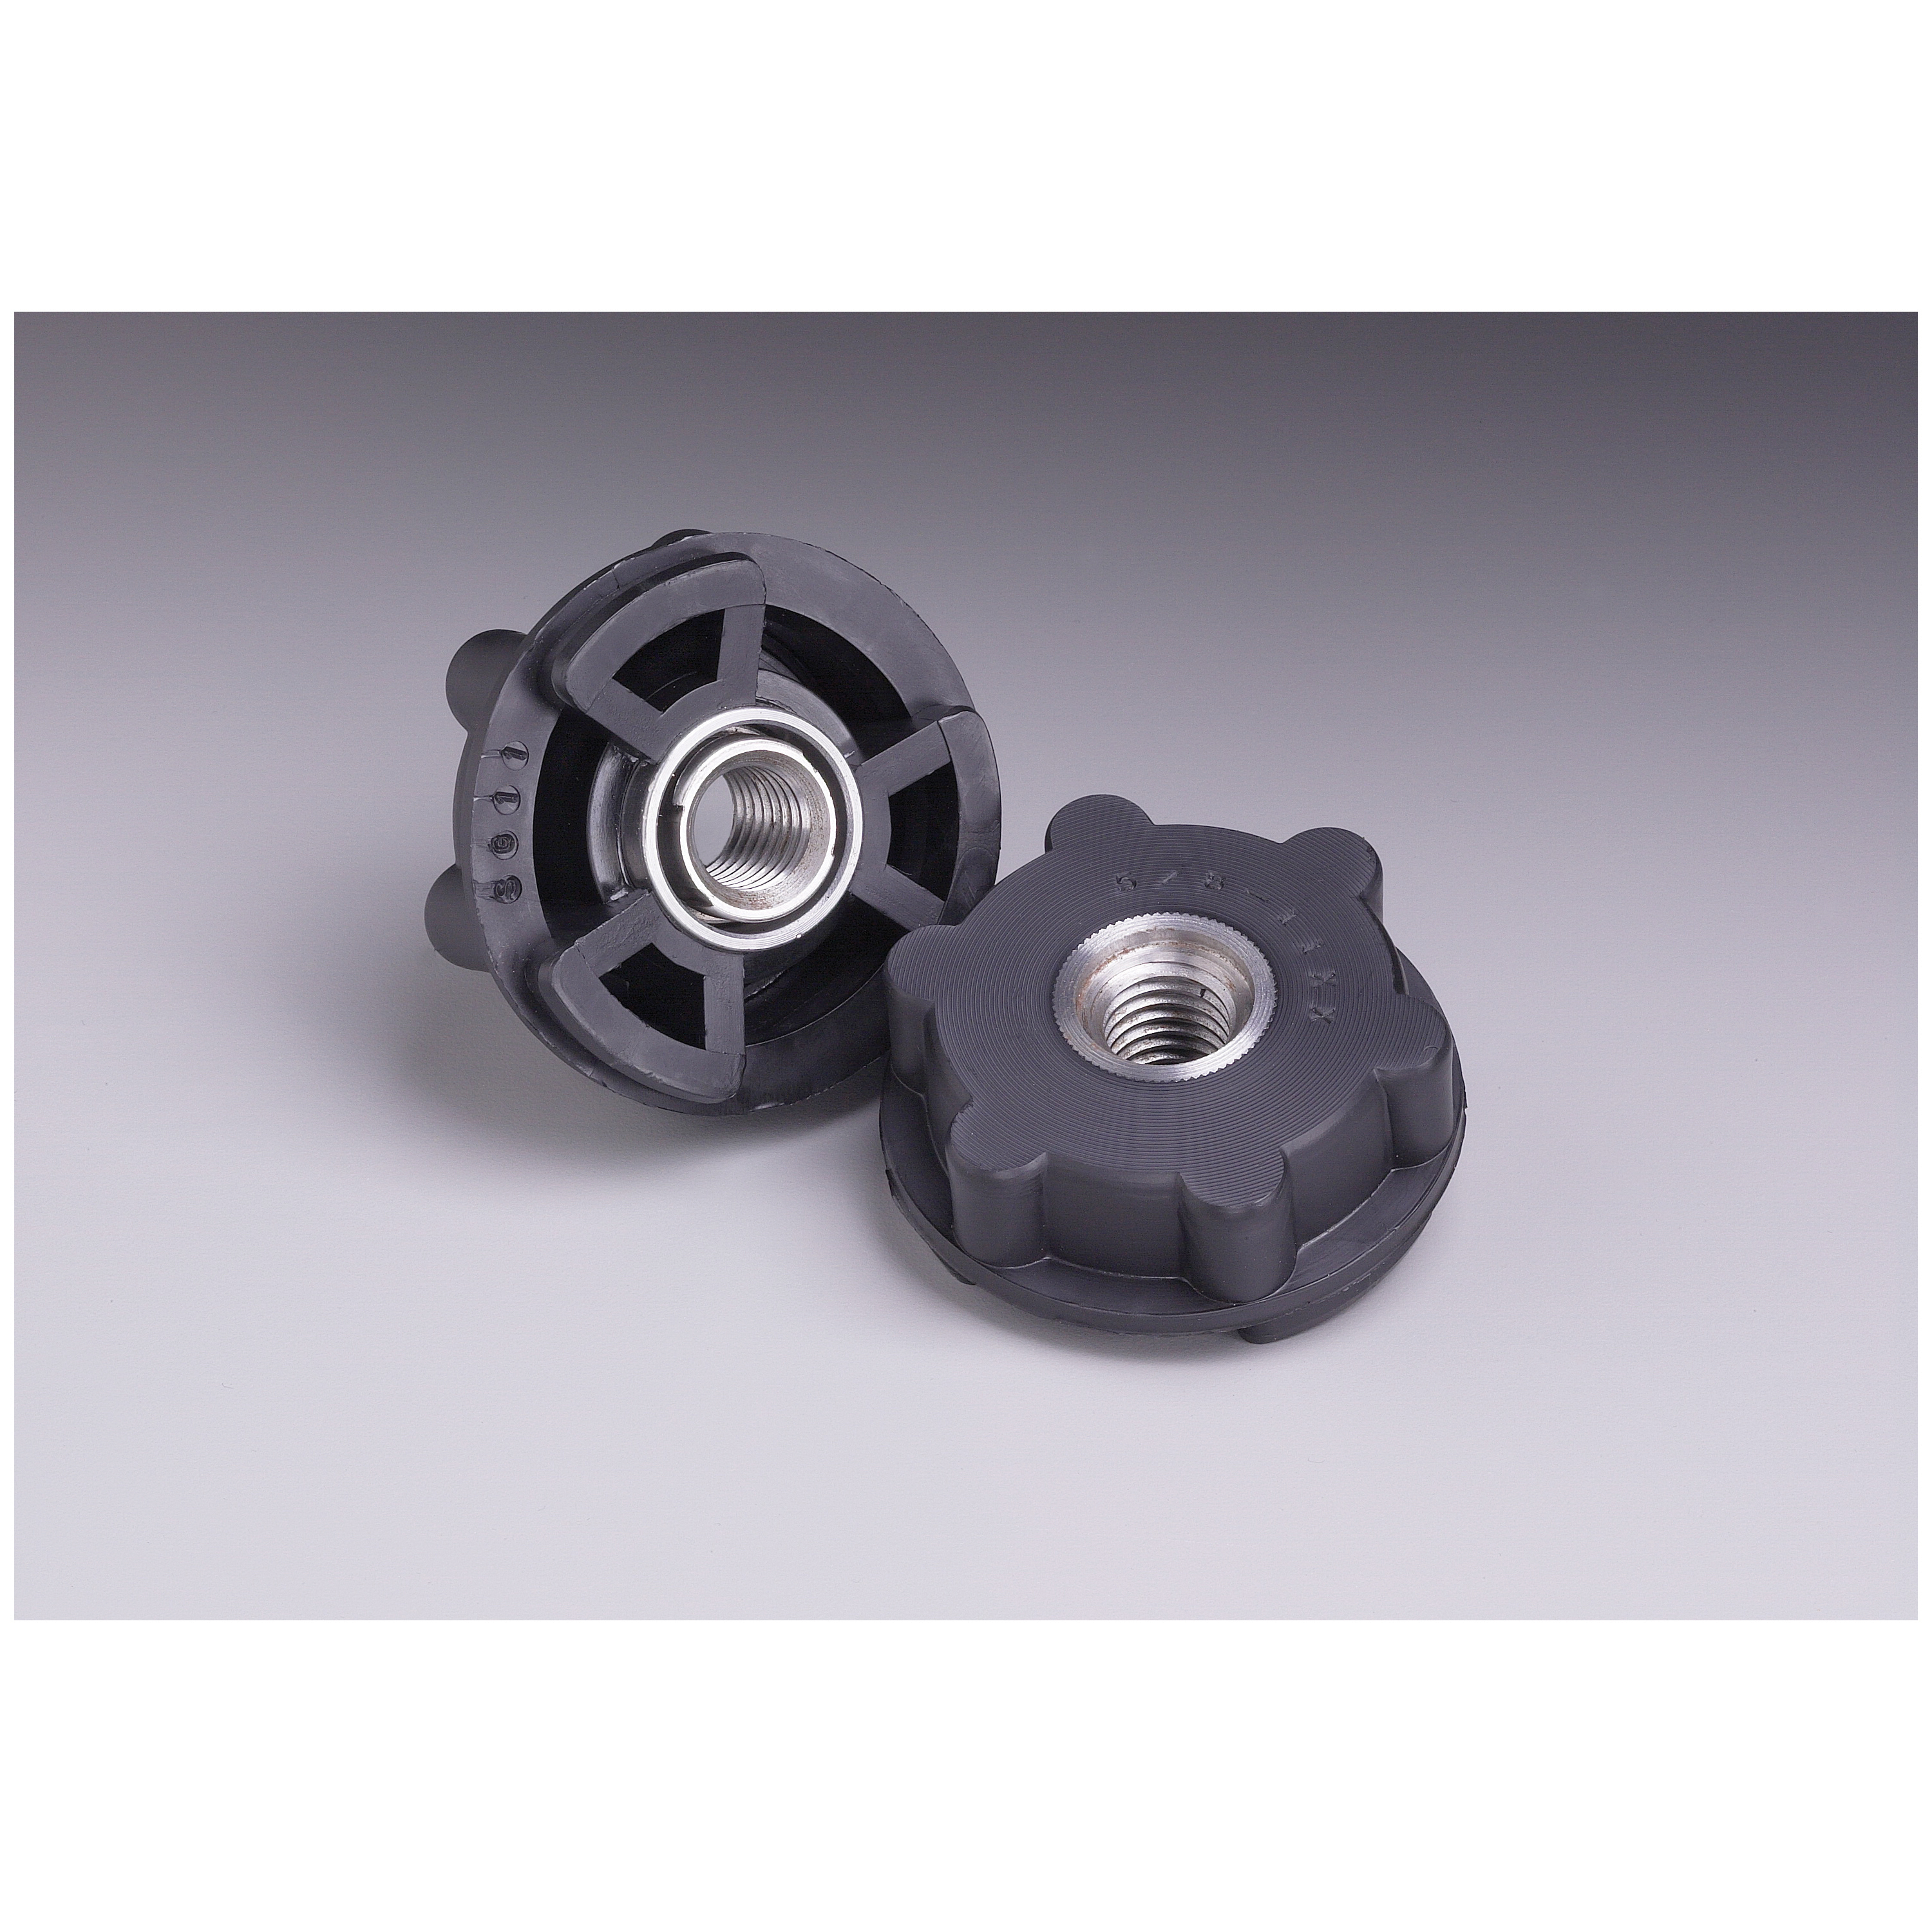 3M™ 051144-11824 Type GL Quick-Attachment Disc Pad Hub, 2-1/2 in, For Use With 4 to 7 in Face Plate